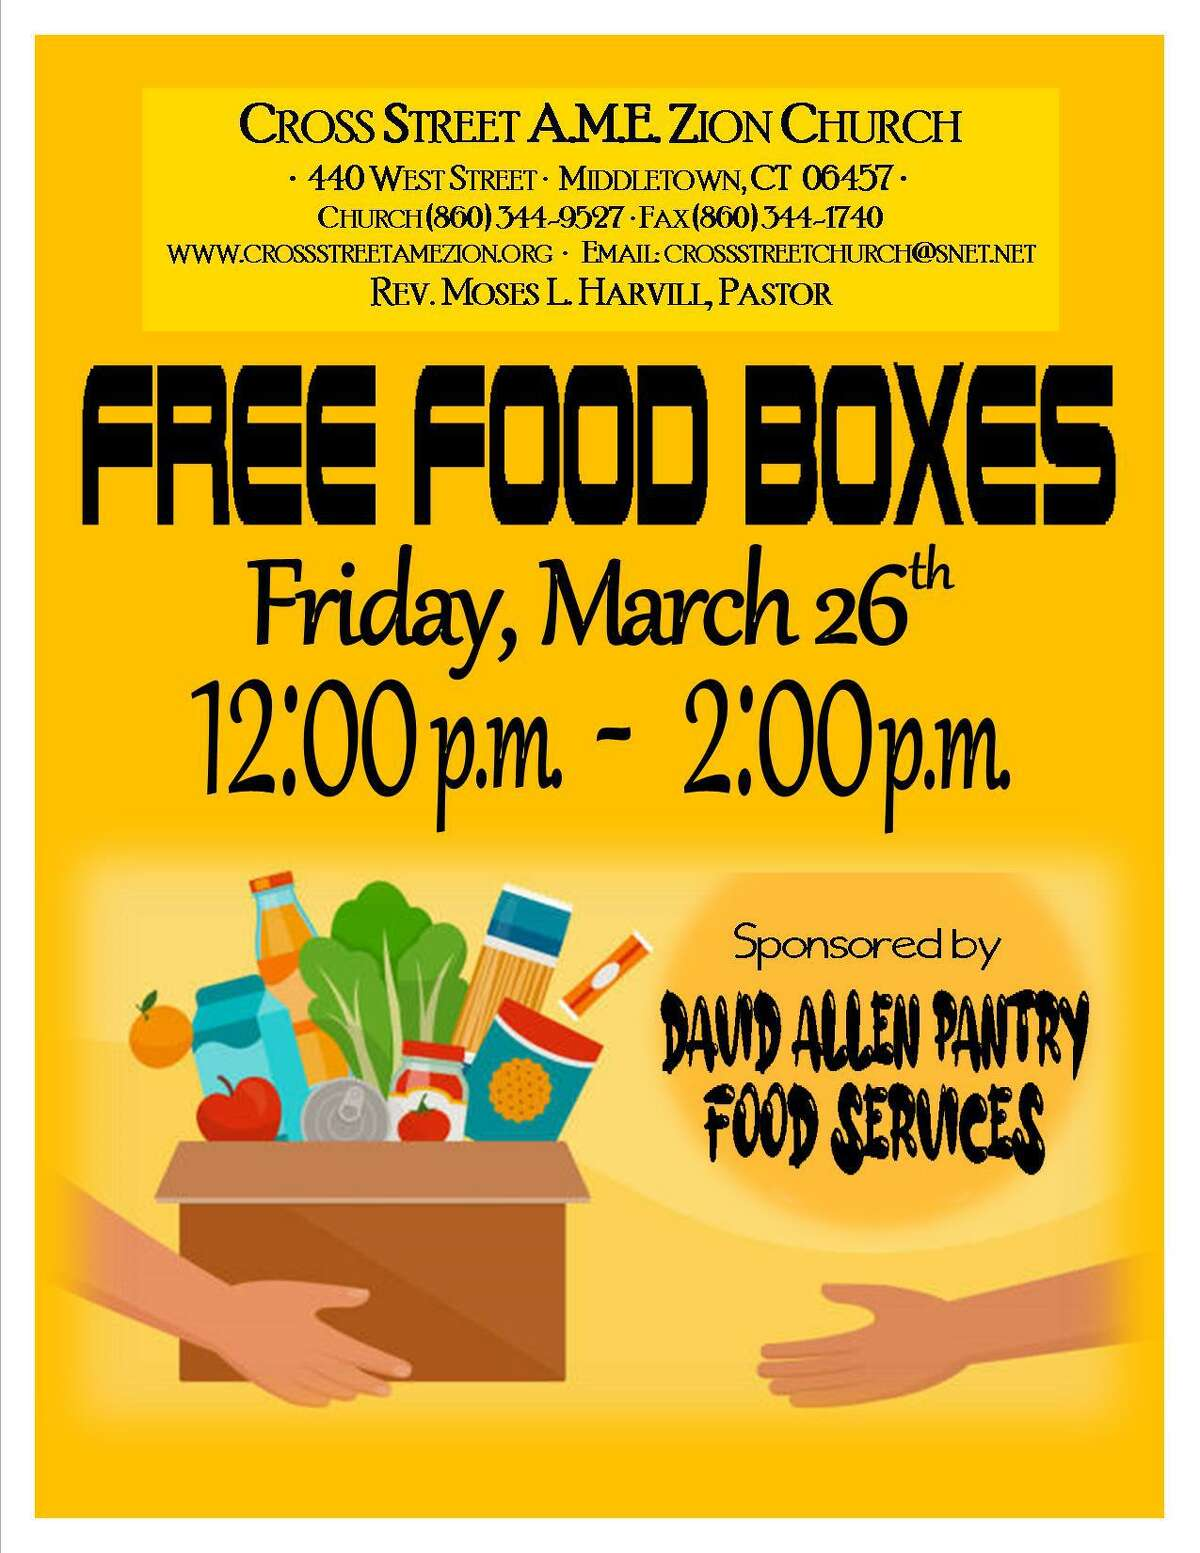 Cross Street AME Zion Church, 440 West St., Middletown, will be giving away free boxes of food Friday.